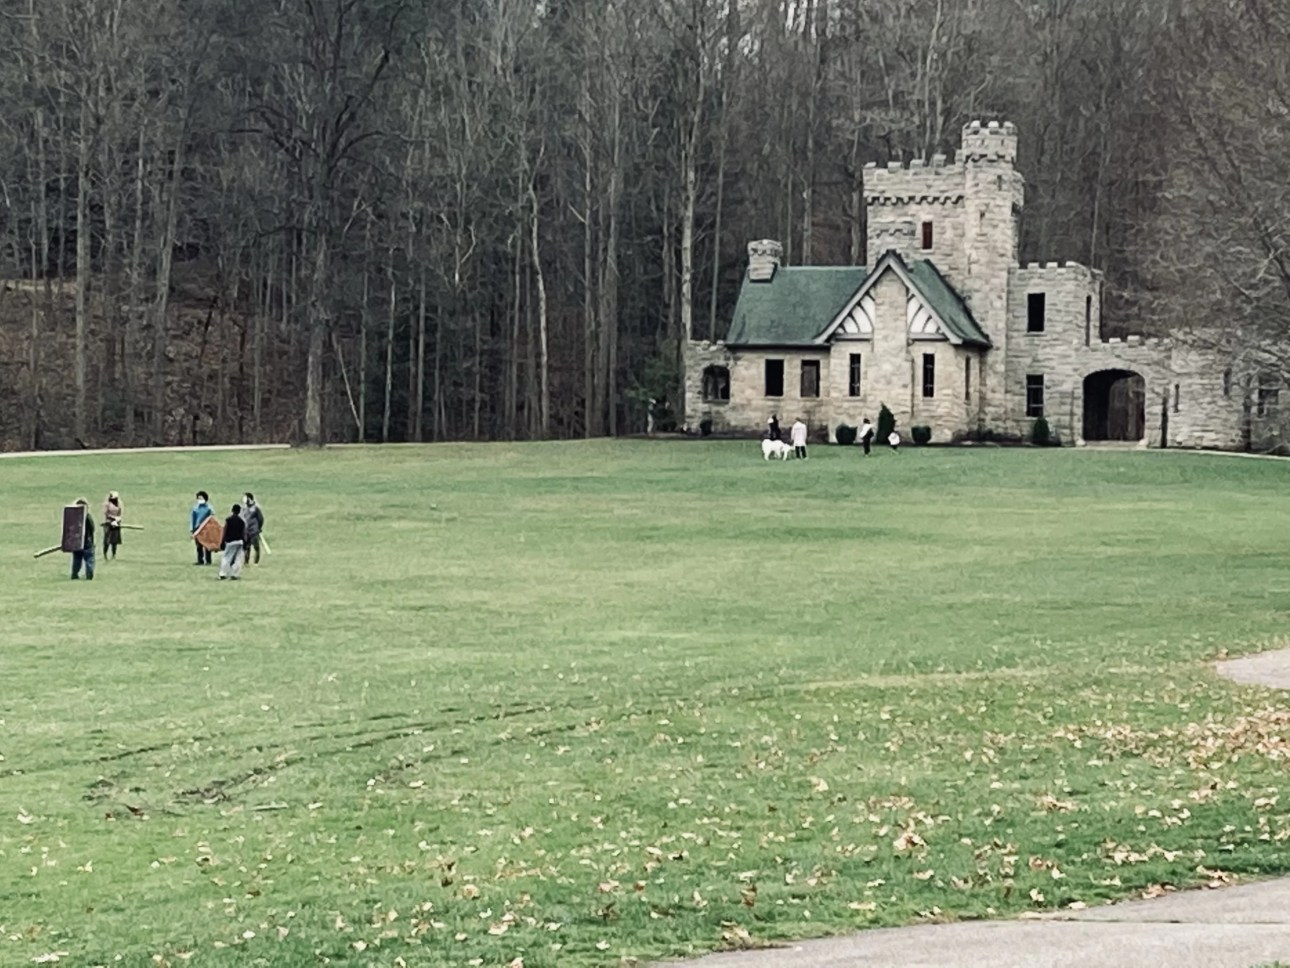 Squire's castle with a group of adults with shields and swords out front on the grass